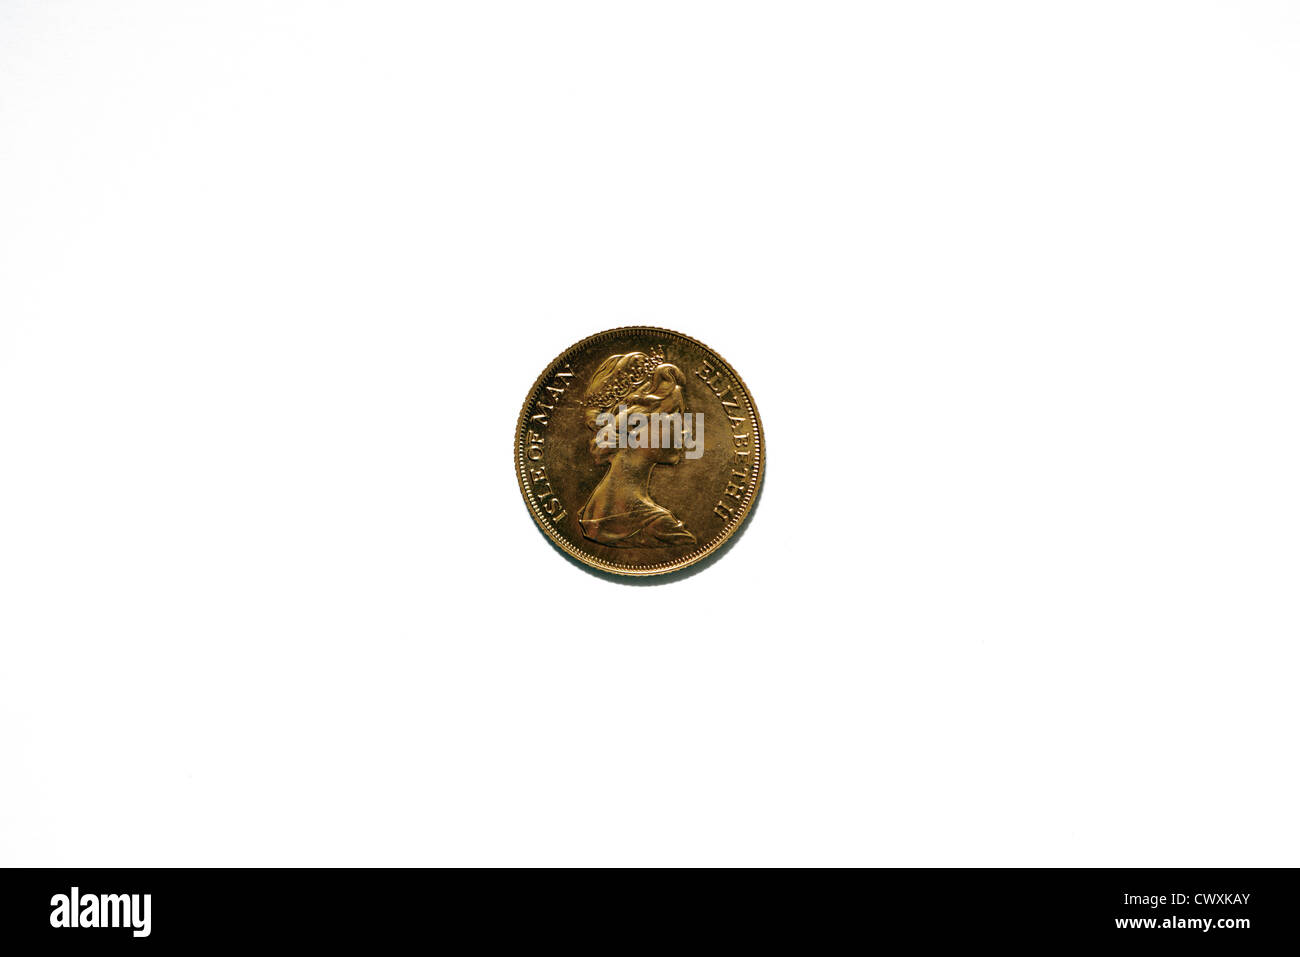 ISLE OF MAN,HALF SOVEREIGN, OBVERSE, GOLD COIN - Stock Image